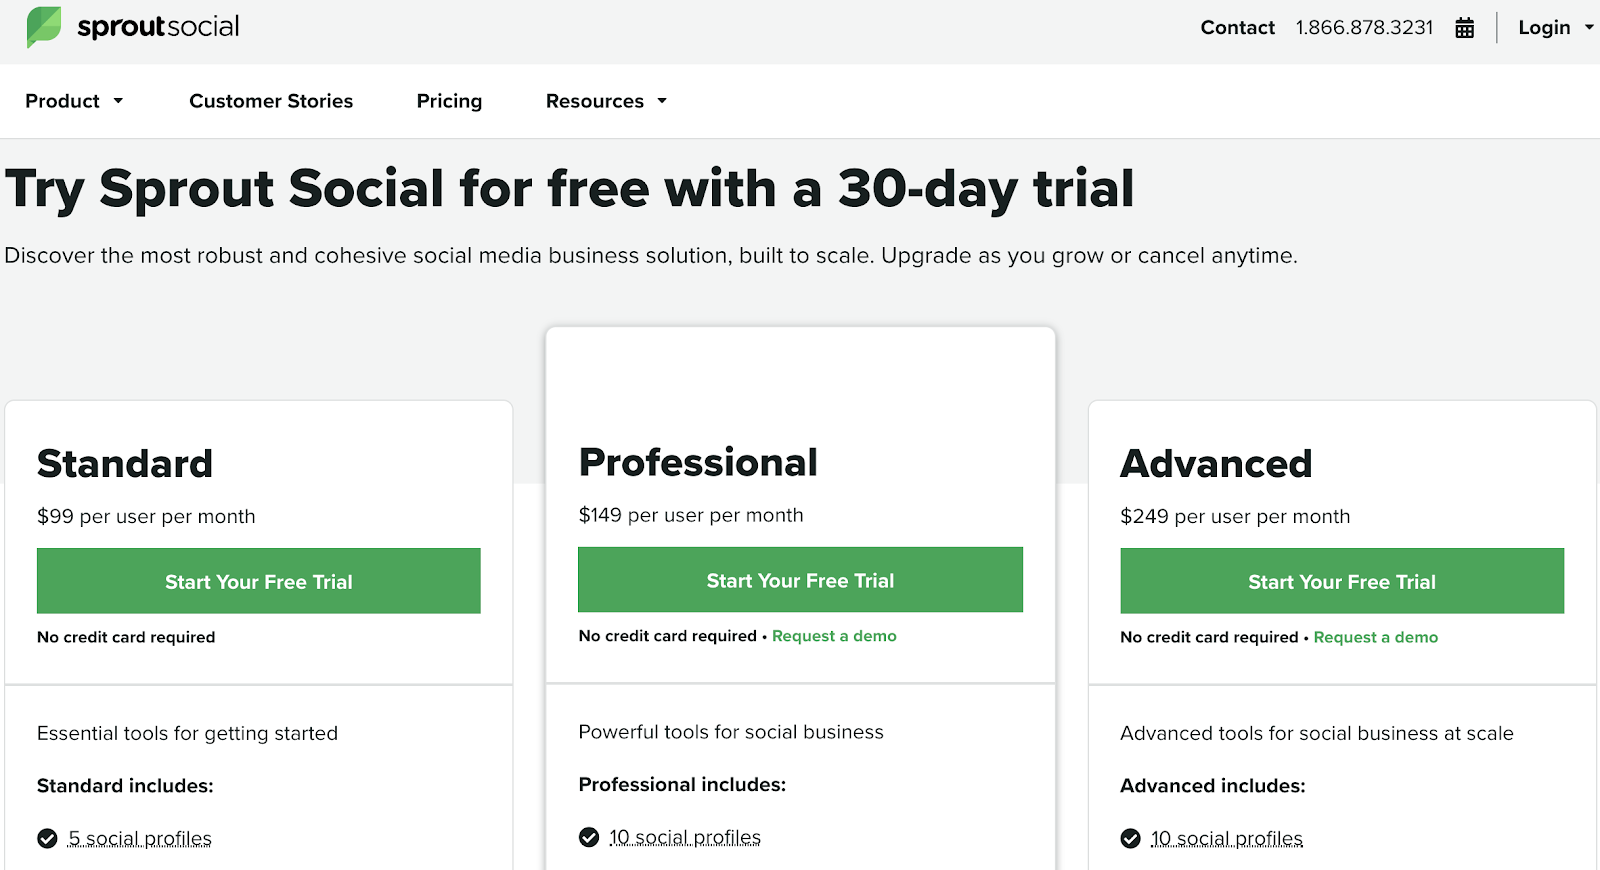 Sprout social pricing page with free trial.